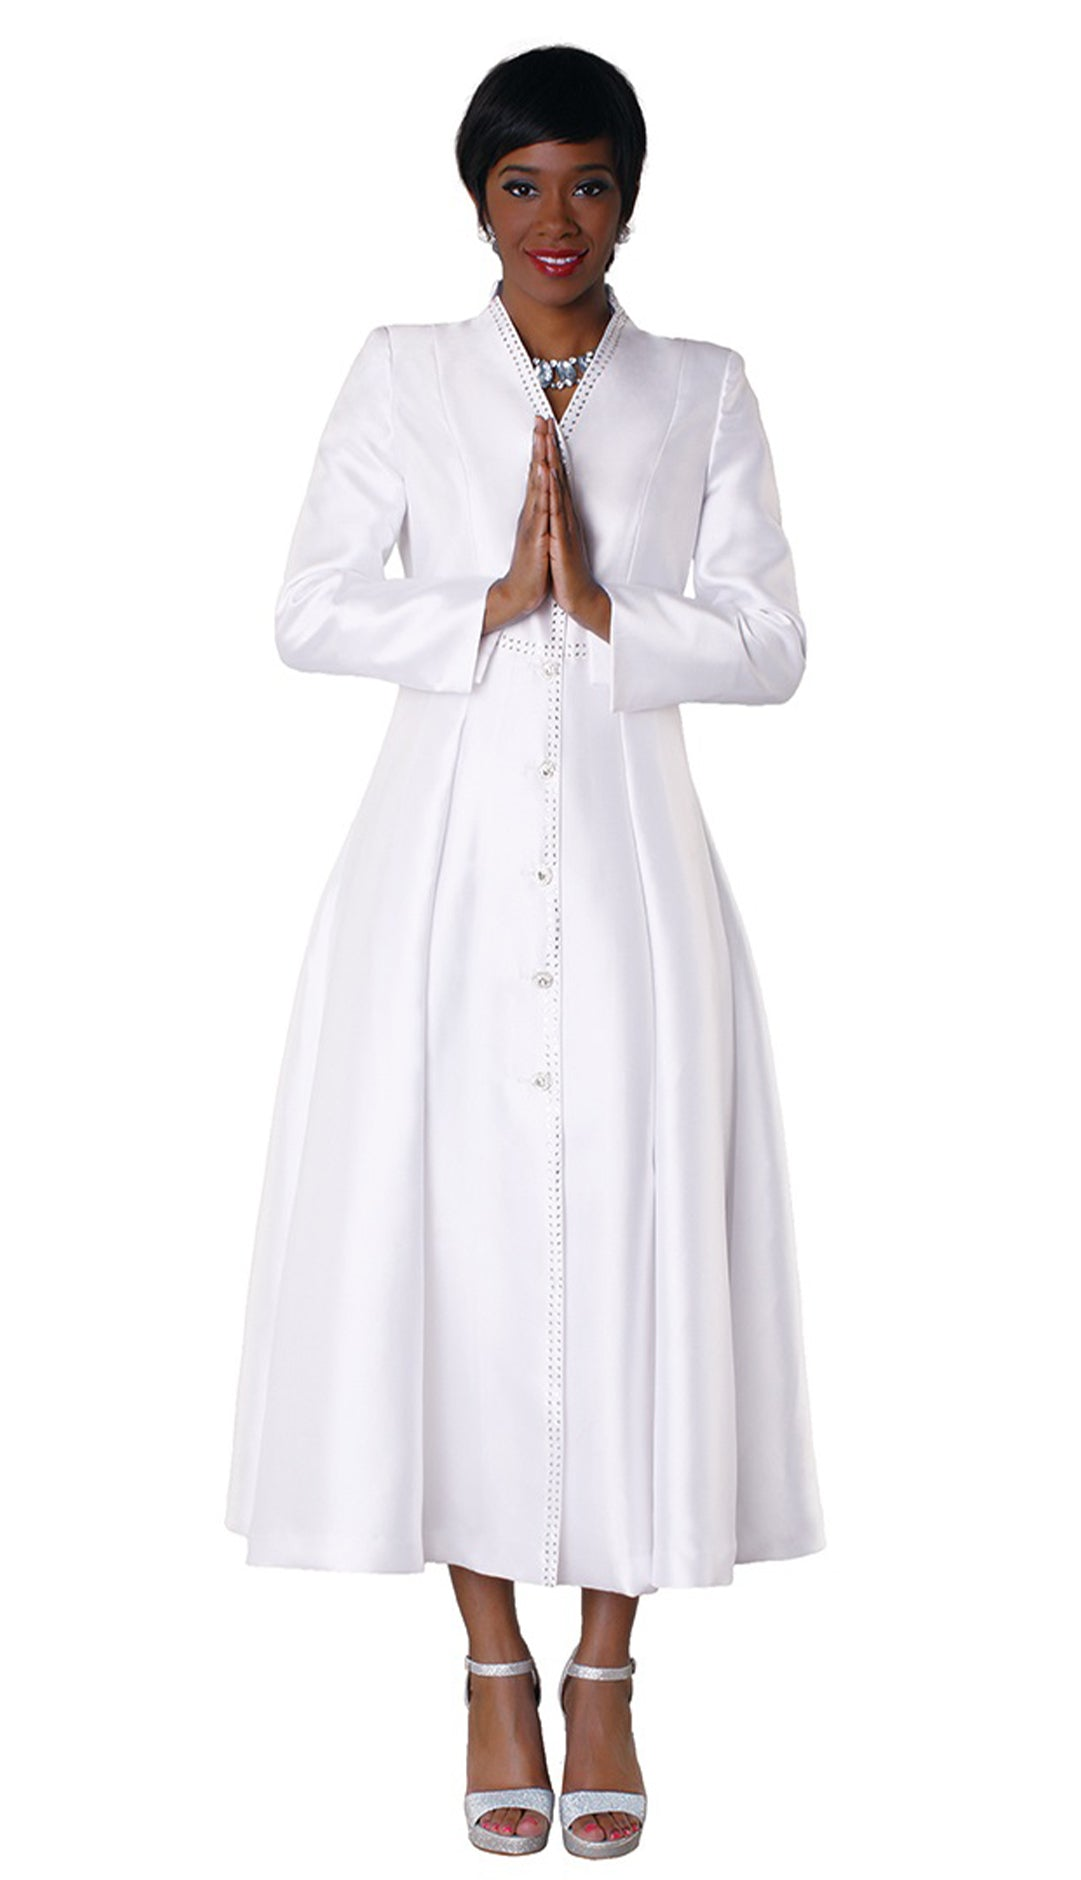 Tally Taylor Robe 4530-White - Church Suits For Less